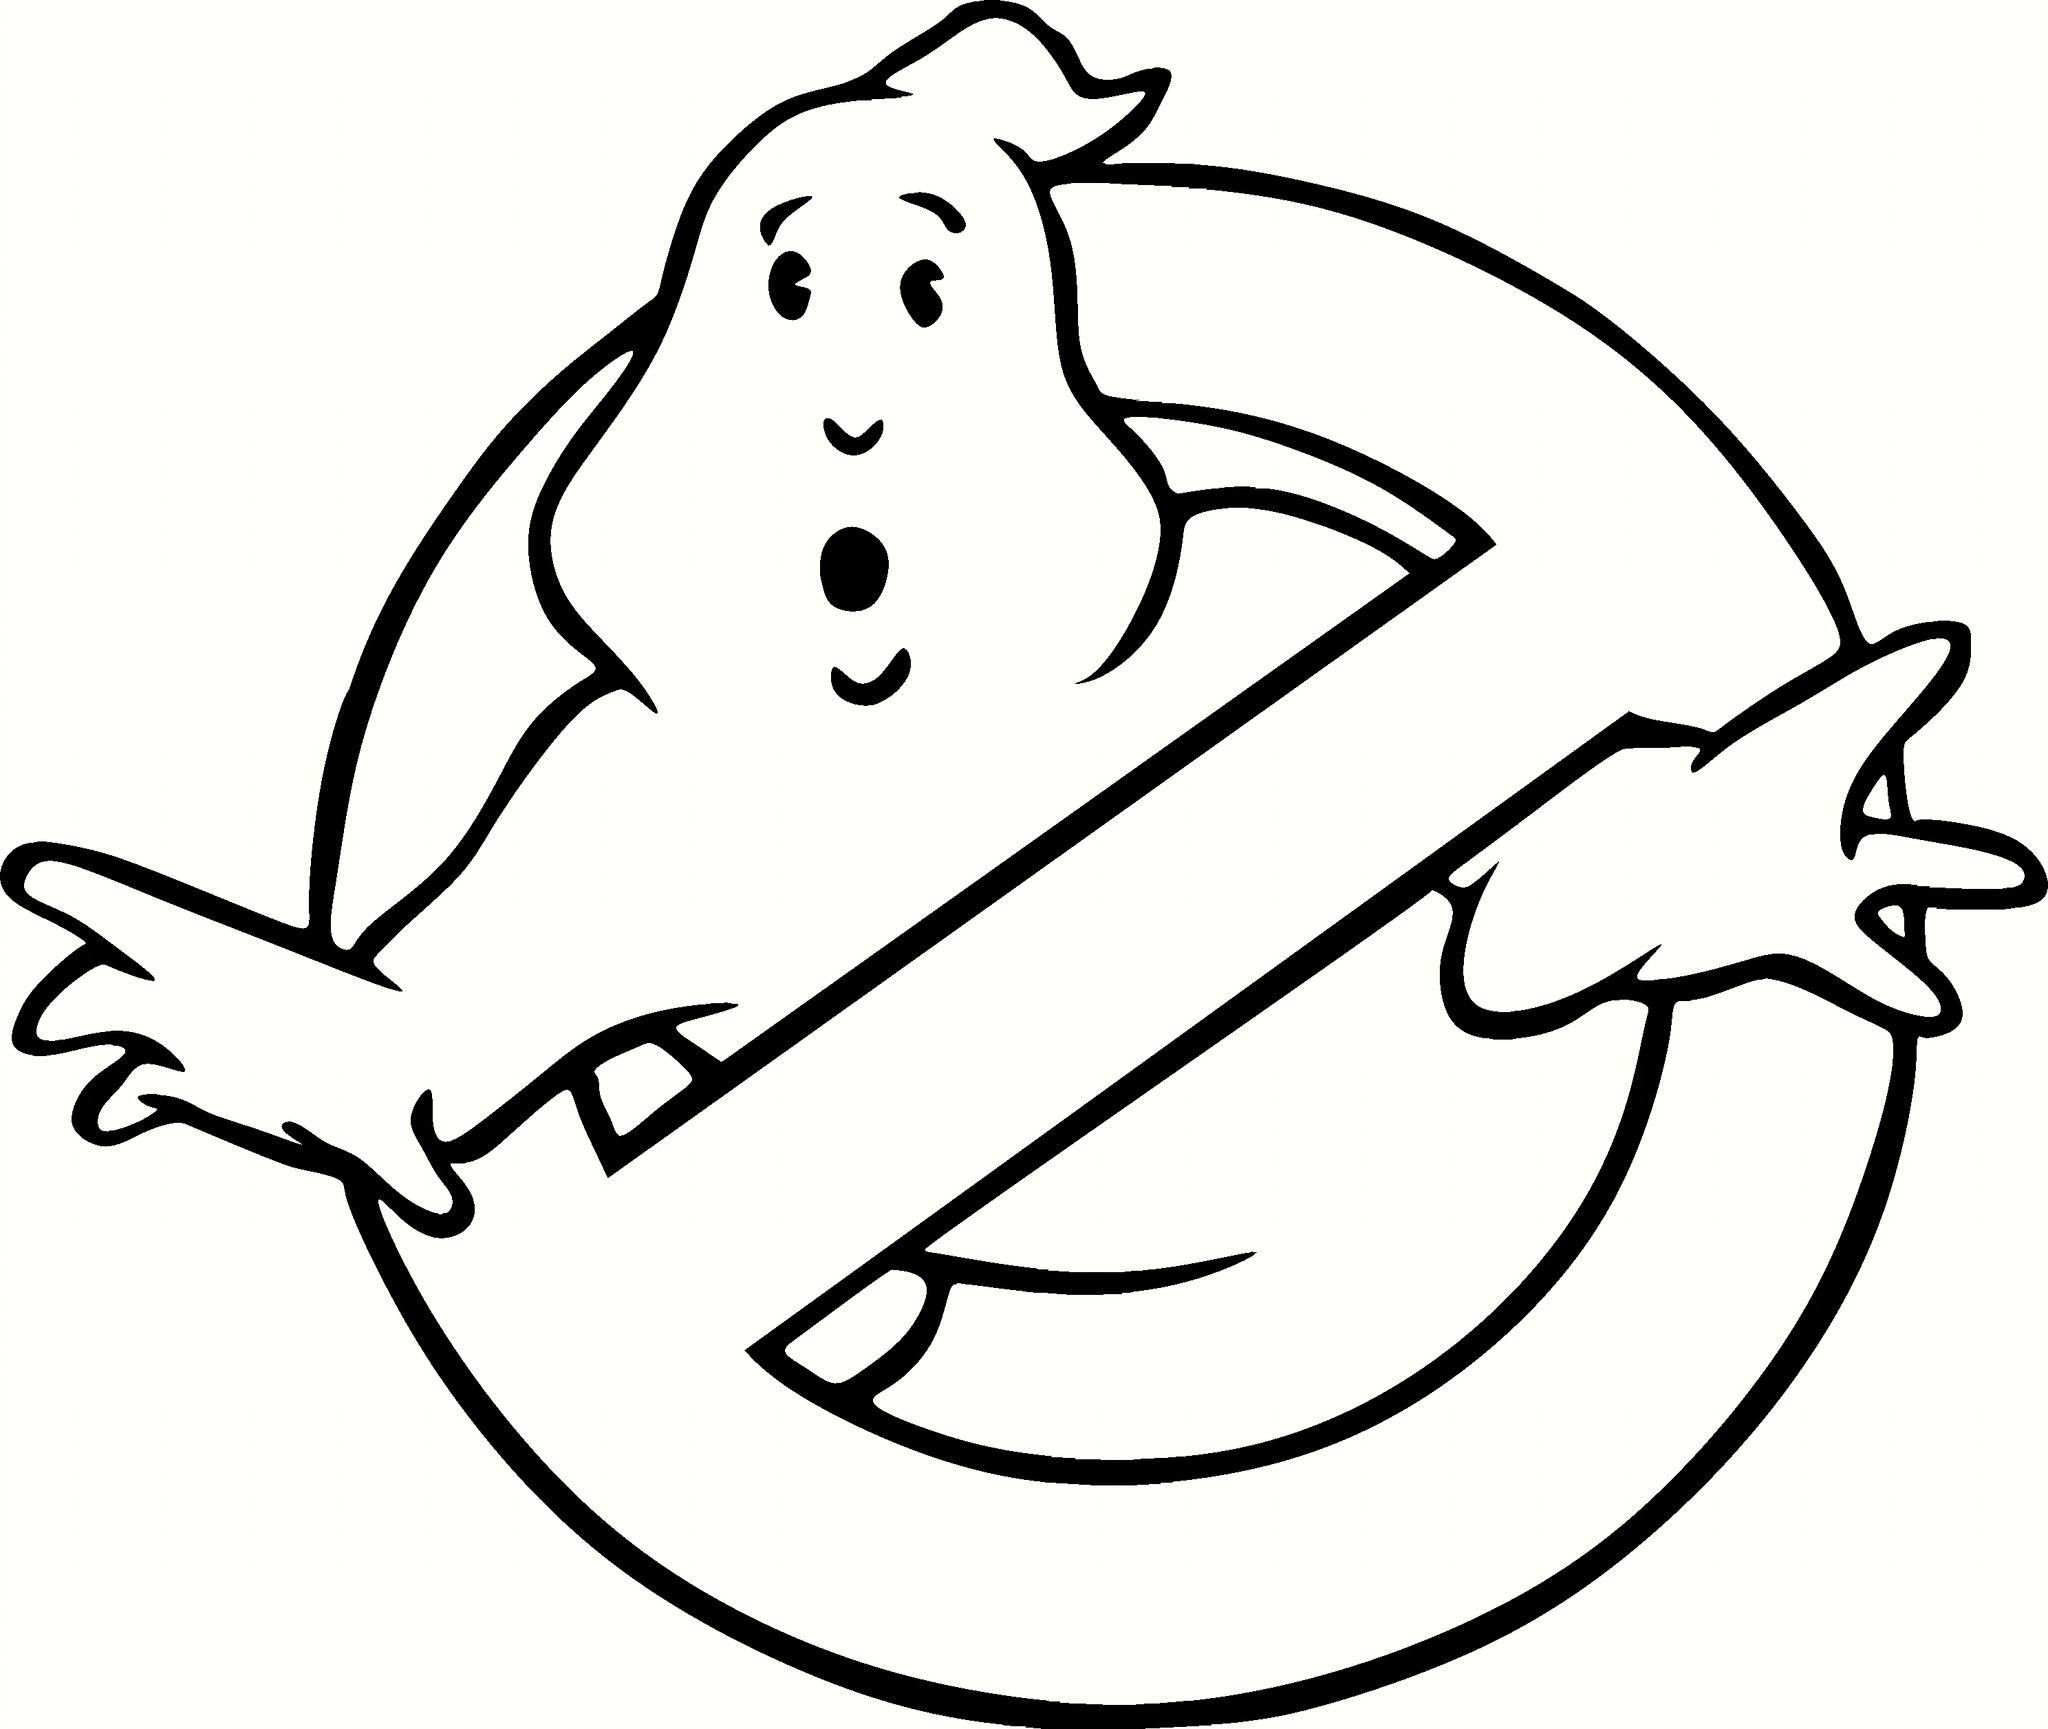 Ghost Busters Logo Vinyl Decal Graphic